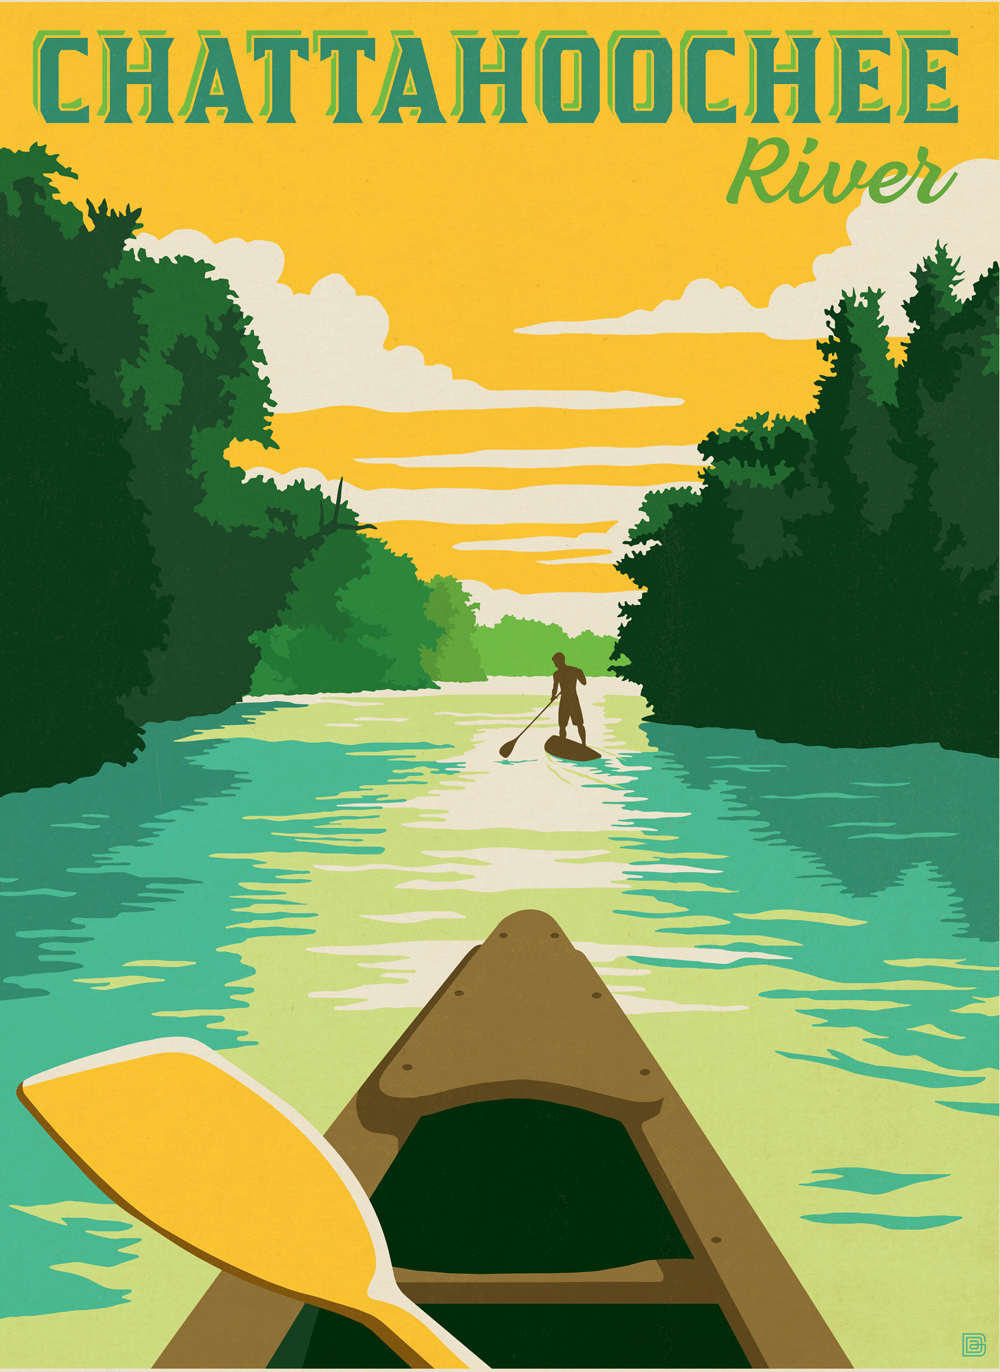 Chattahoochee River cover illustration